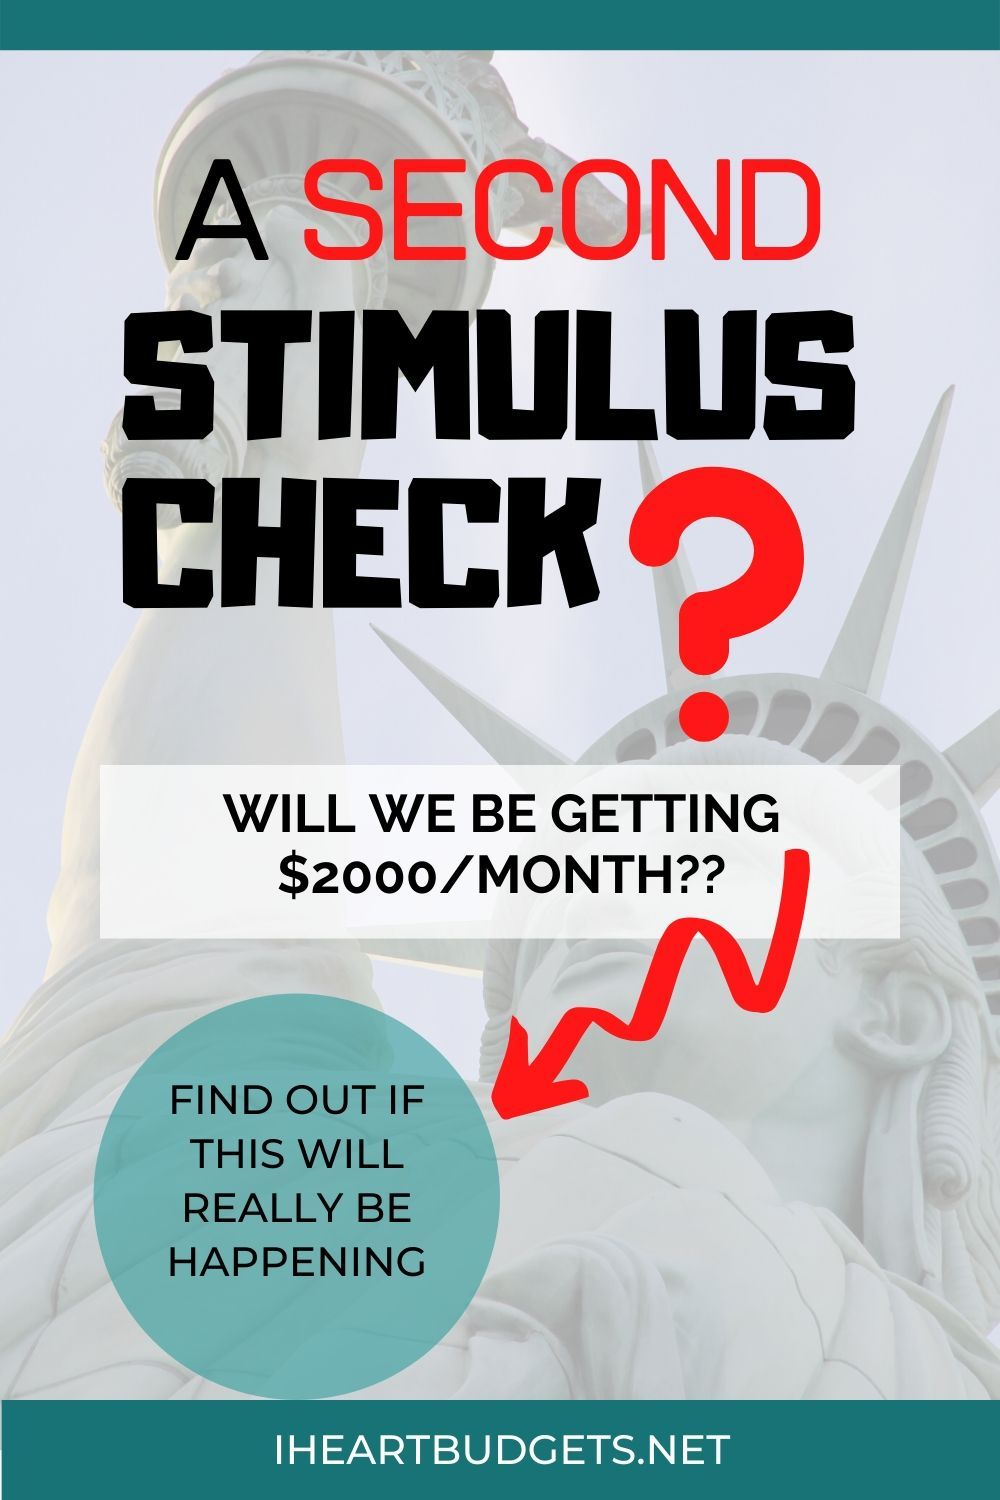 Confirmed 1200 second stimulus checks exact same as